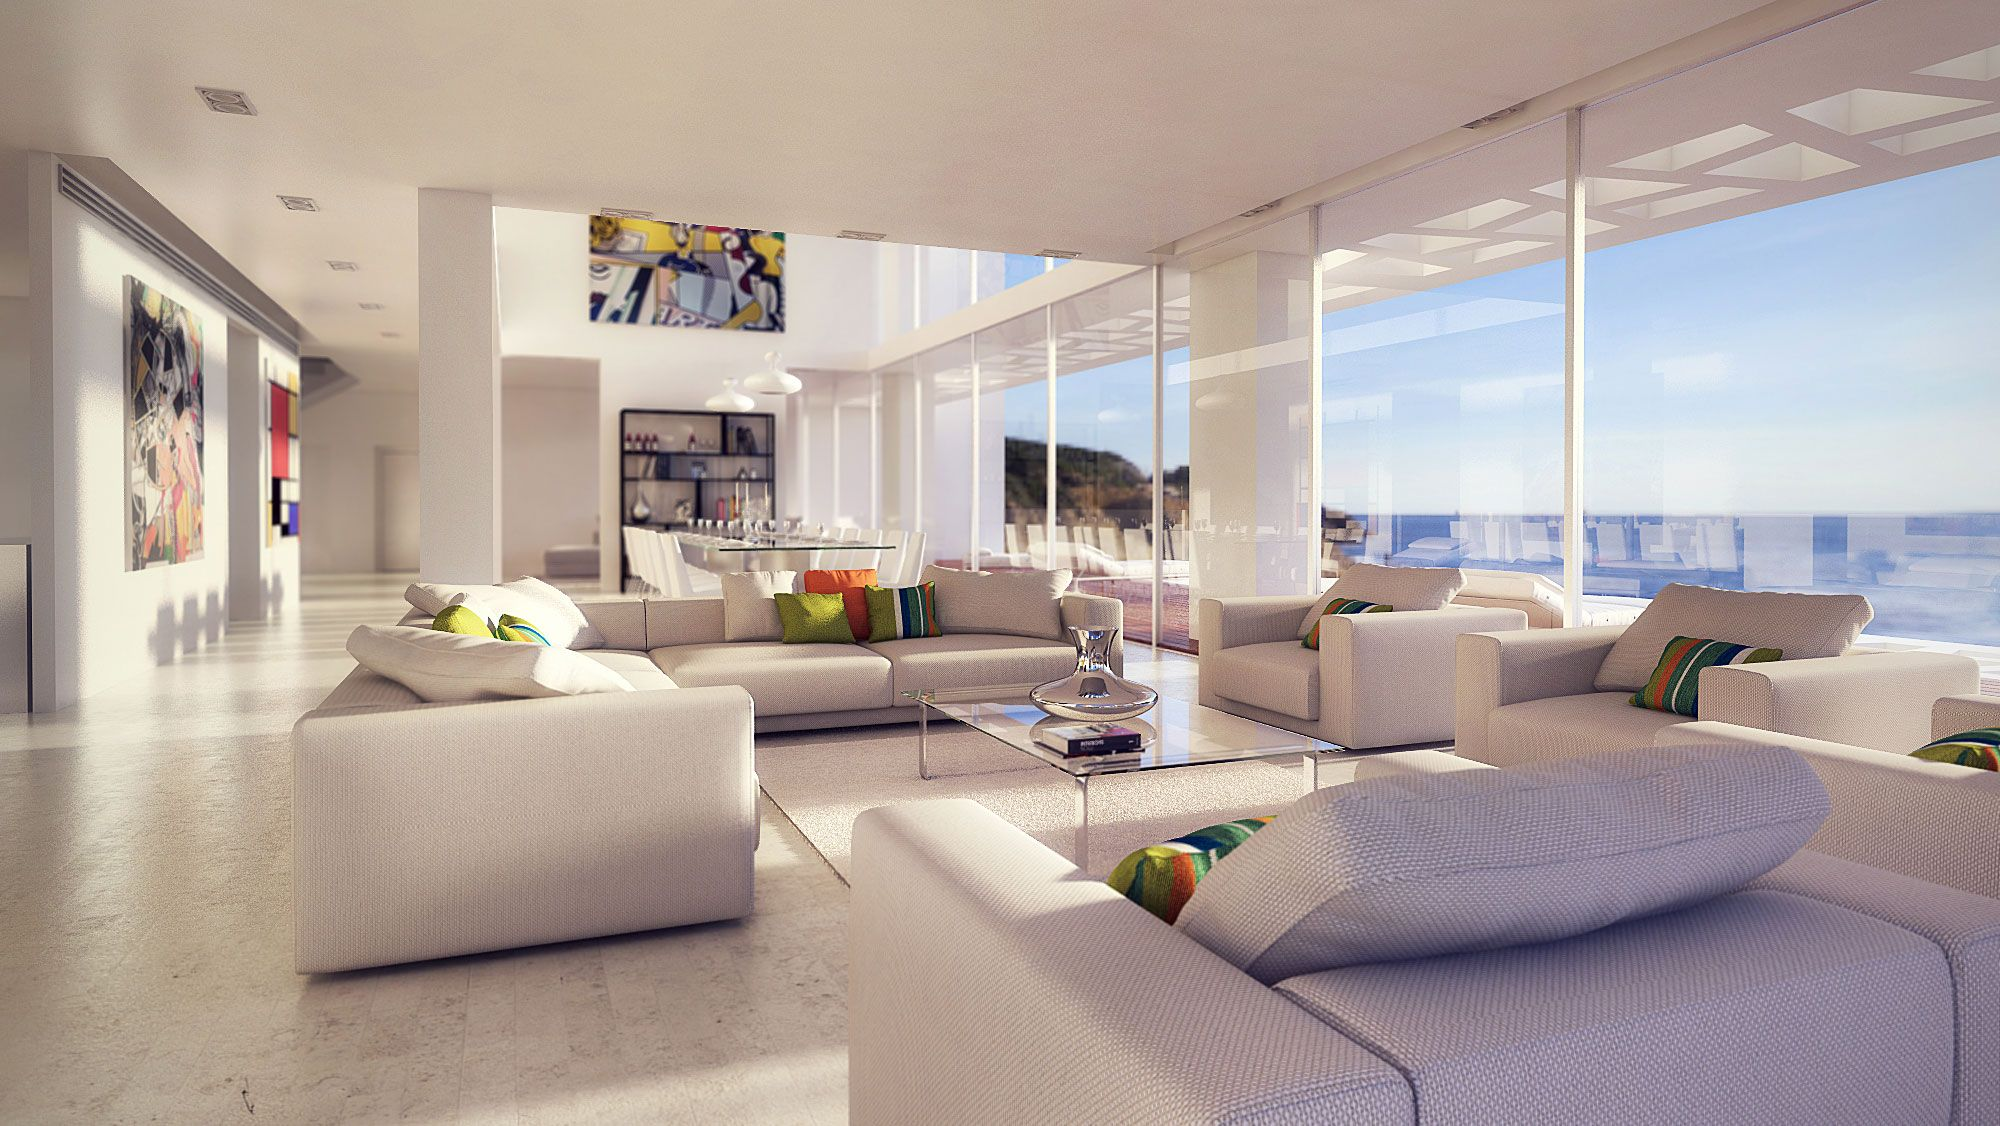 LuxuryLiving Home in Arsuf by Studio Aristo | Bachelor Pad ...